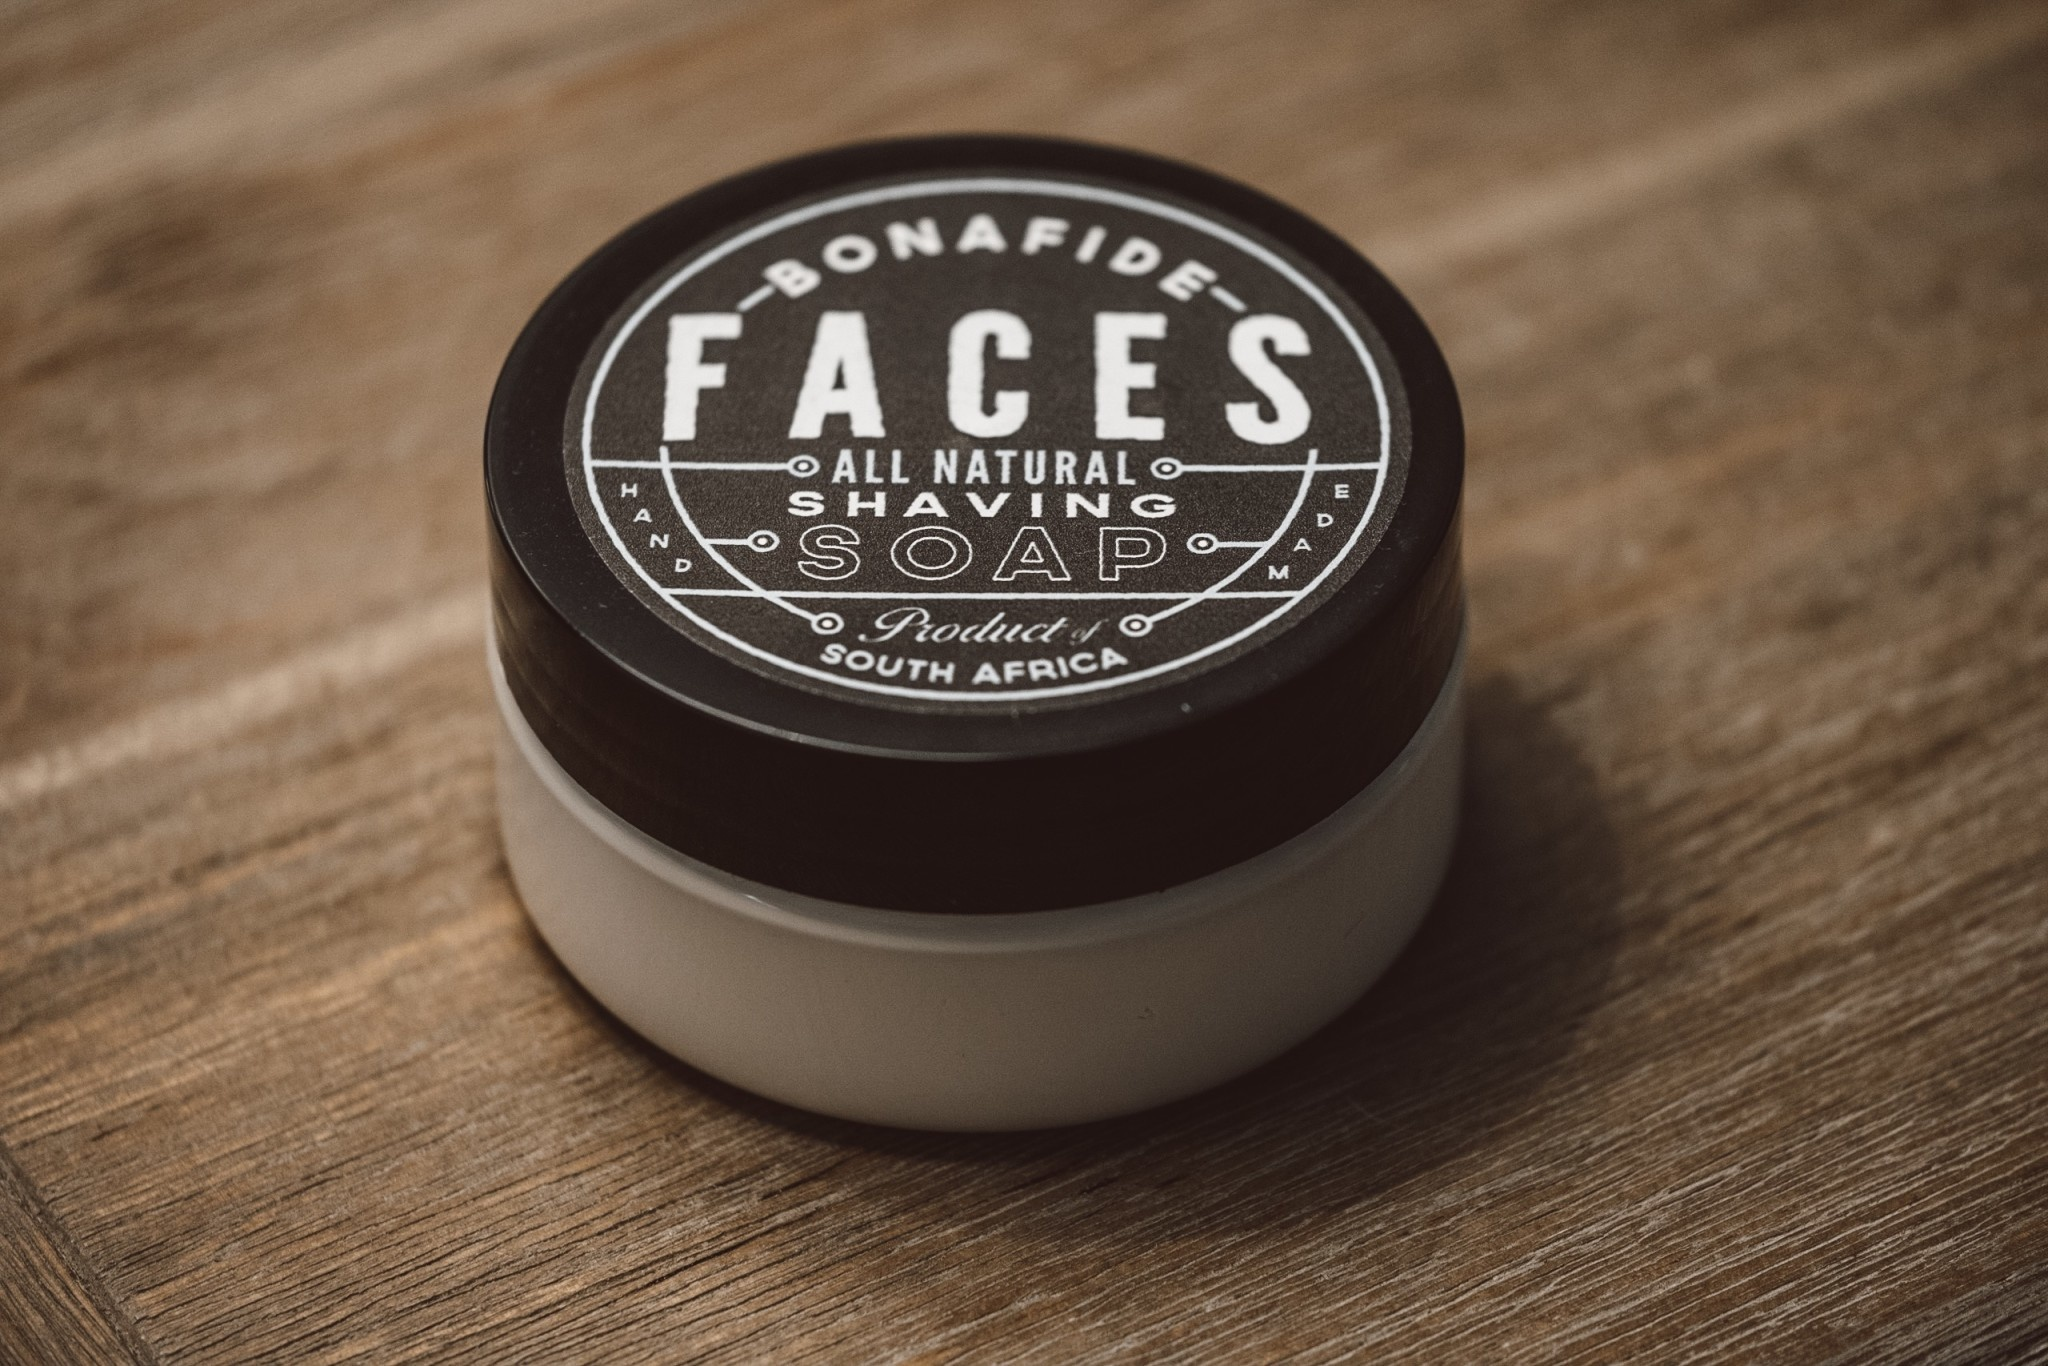 Bonafide Beards Handcrafted Shaving Soap